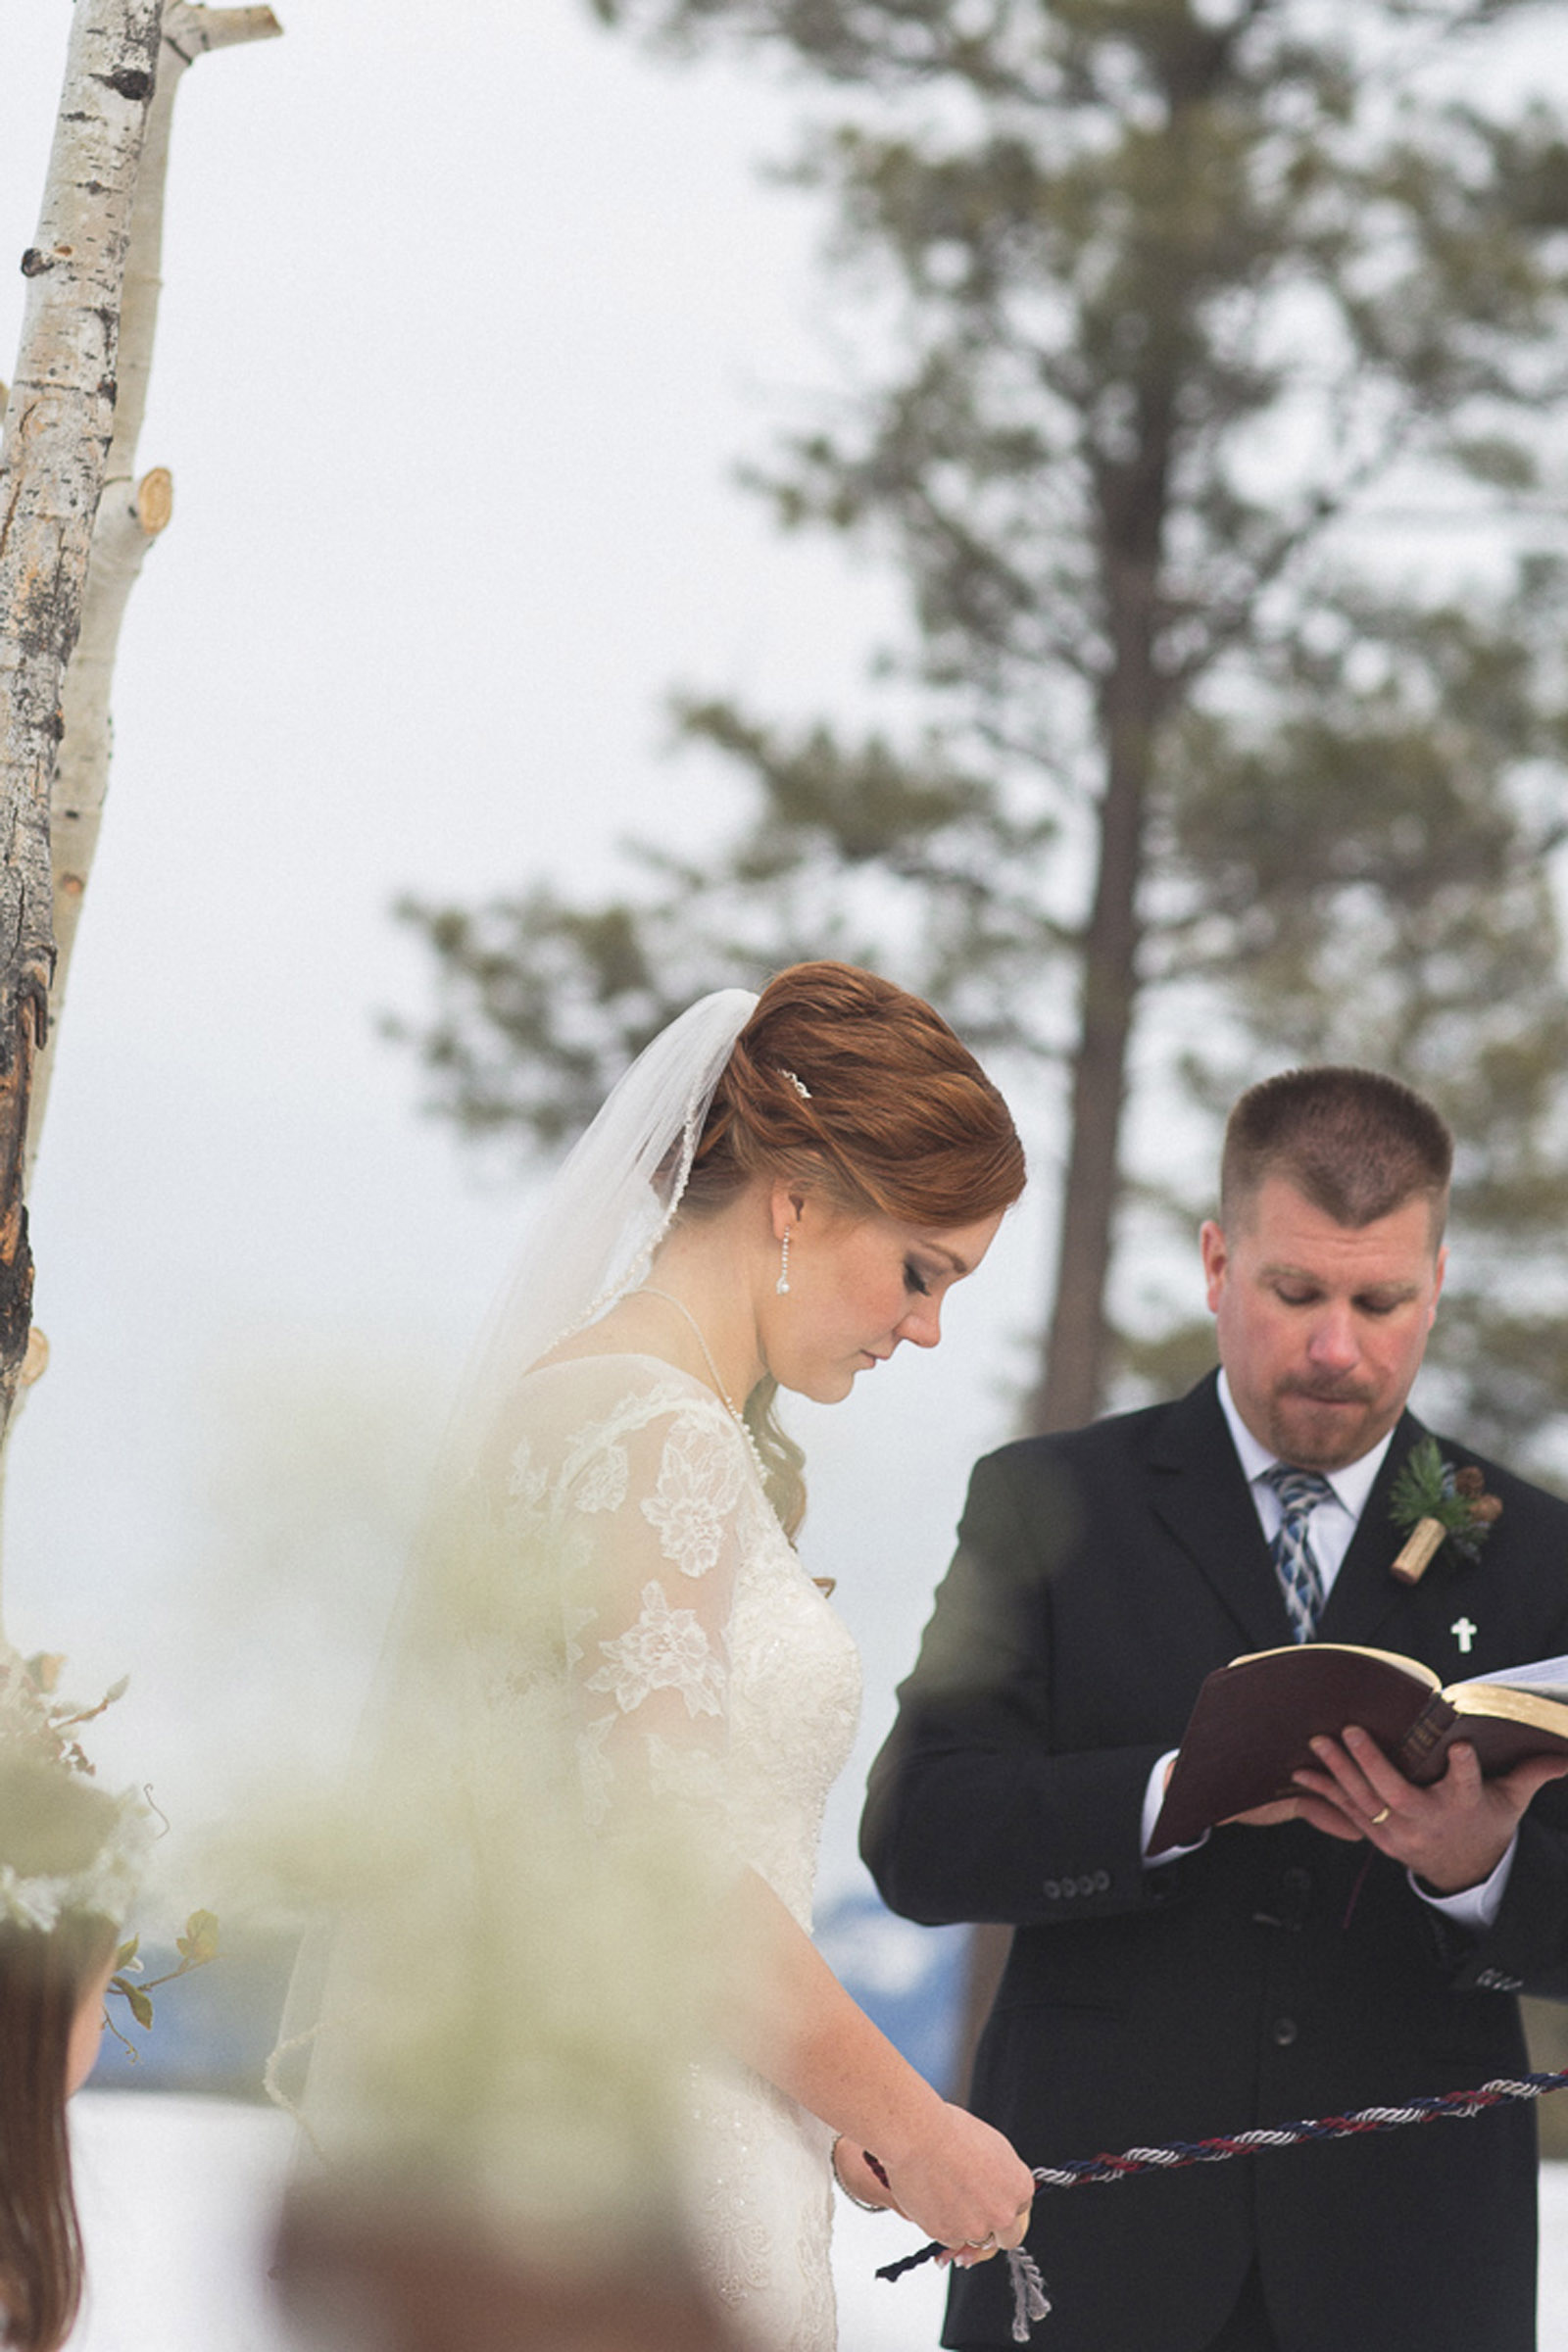 124-wedding-ceremony-in-pagosa-springs-wedding-photographer-snow-winter-wedding